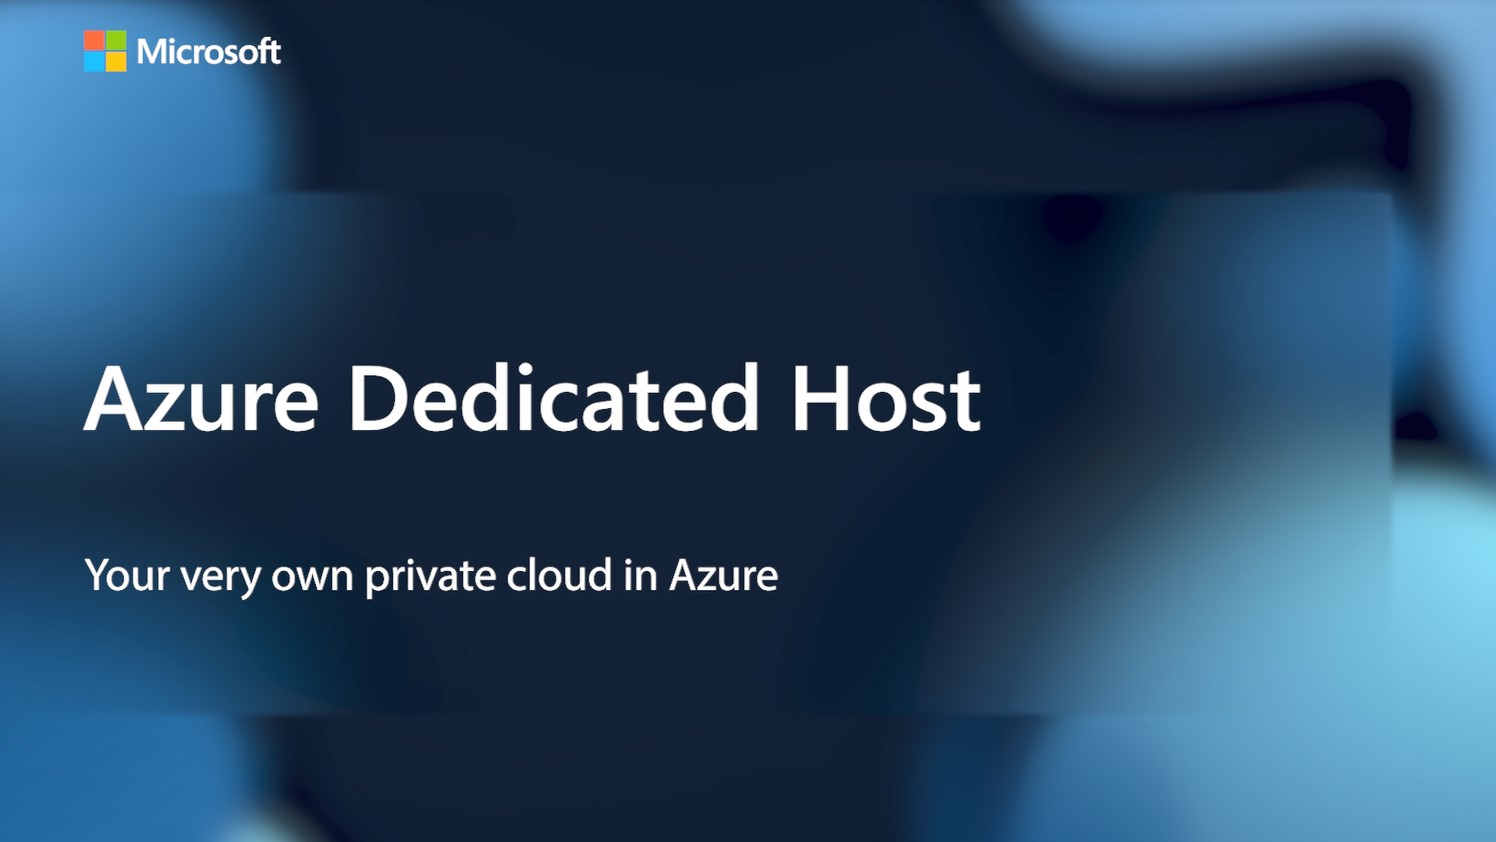 Azure Dedicated Host - Your very own private cloud in Azure